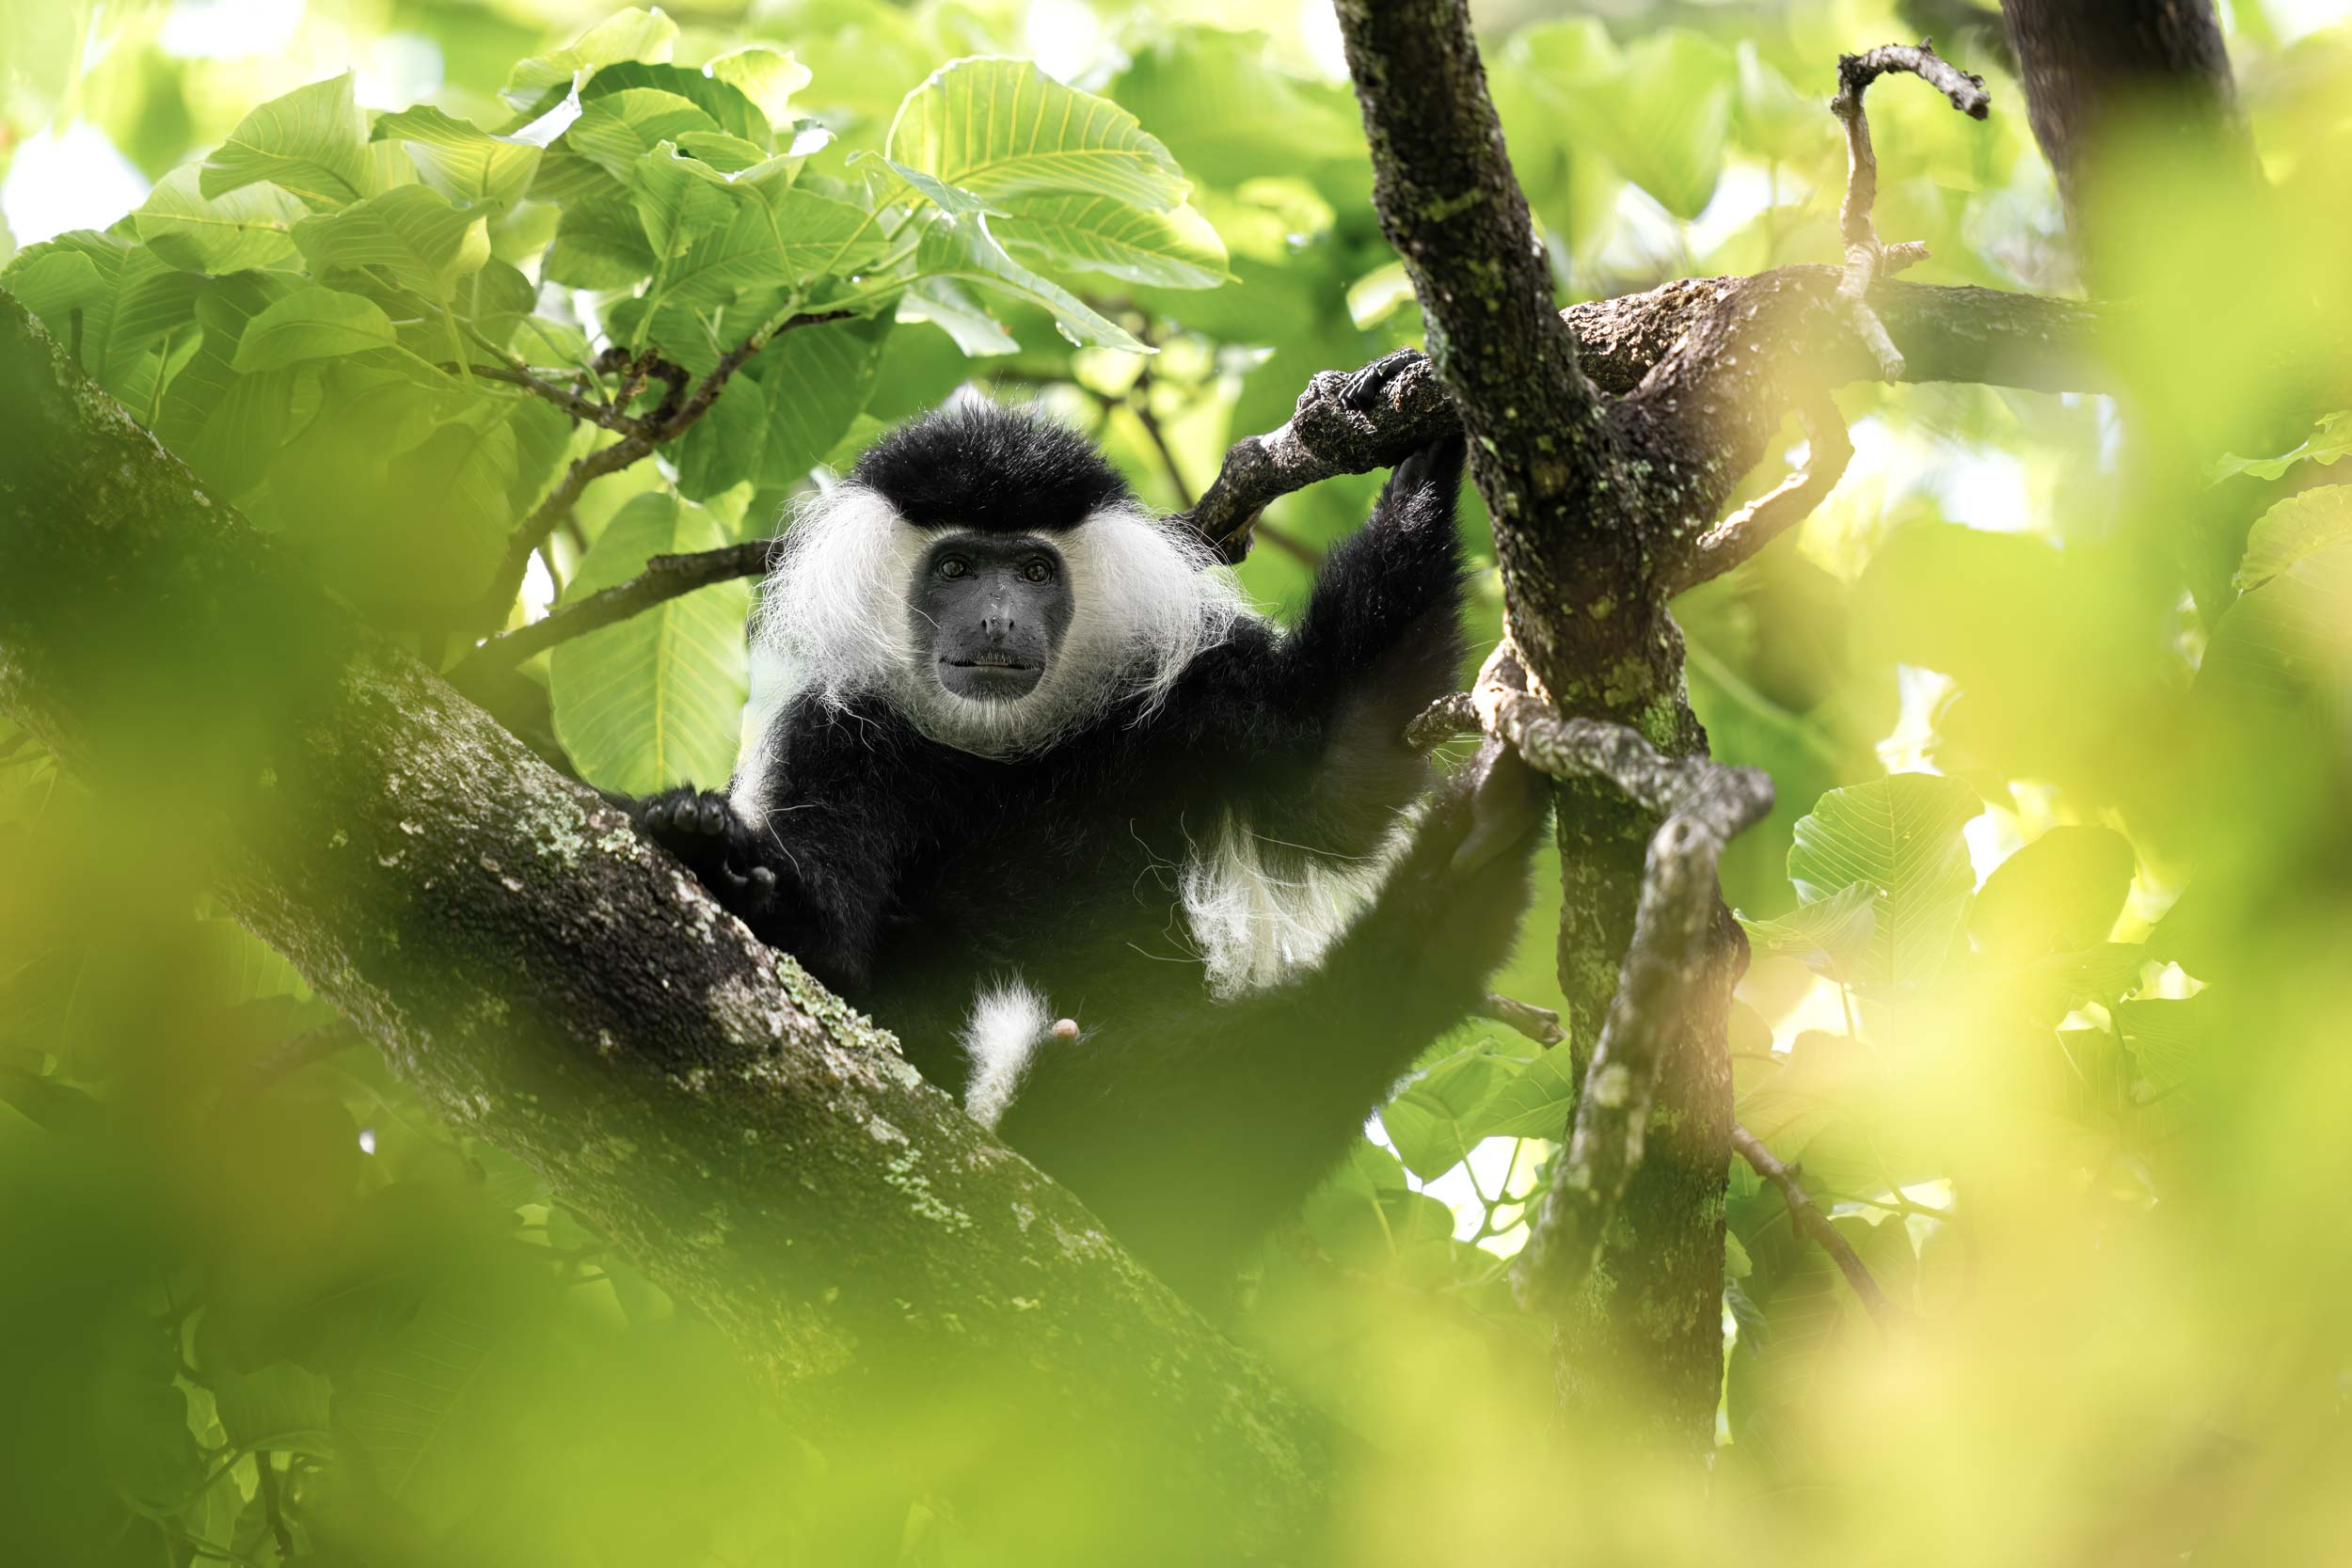 Angolan colobus monkey photographed in the Udzungwa mountains national park in Tanzania